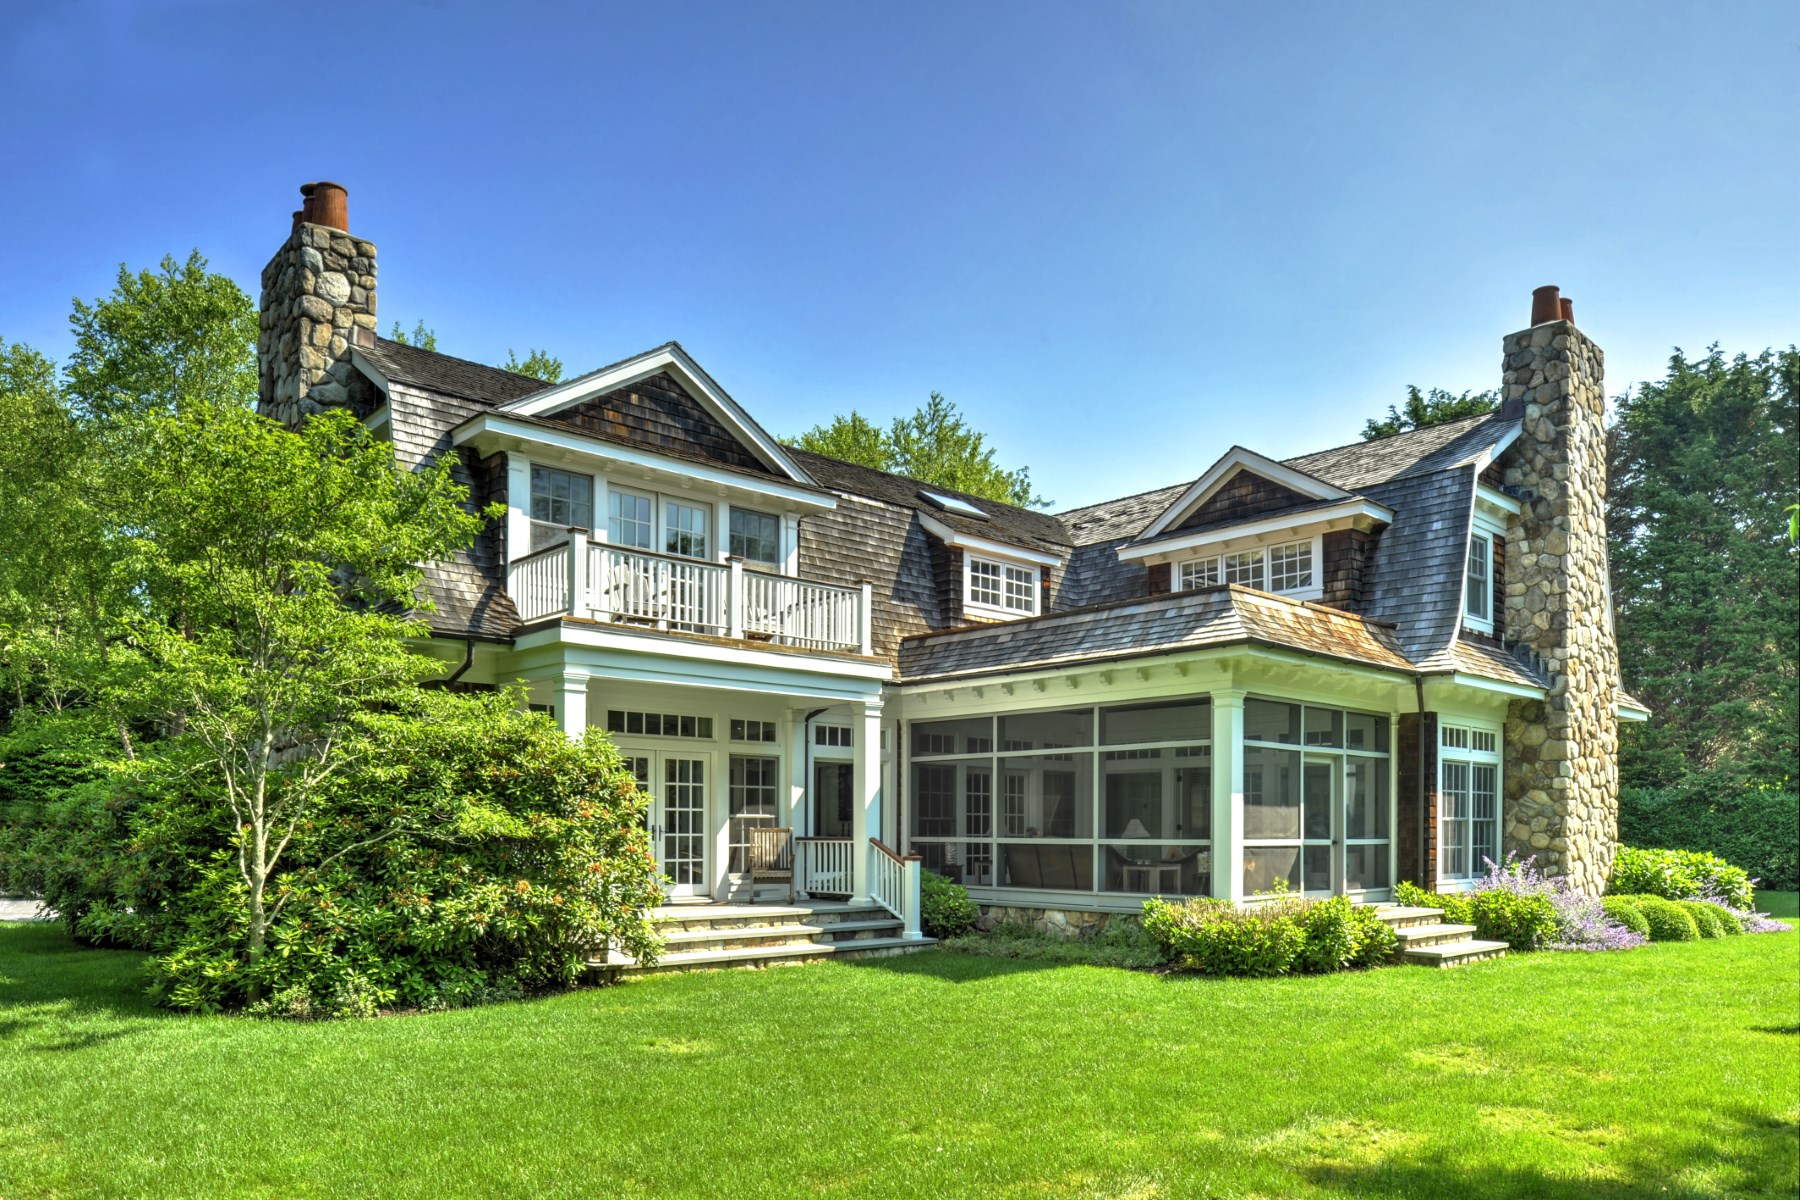 Single Family Home for Sale at Gorgeous Georgica Estate Home 11 Jericho Lane East Hampton Village, East Hampton, New York, 11937 United States